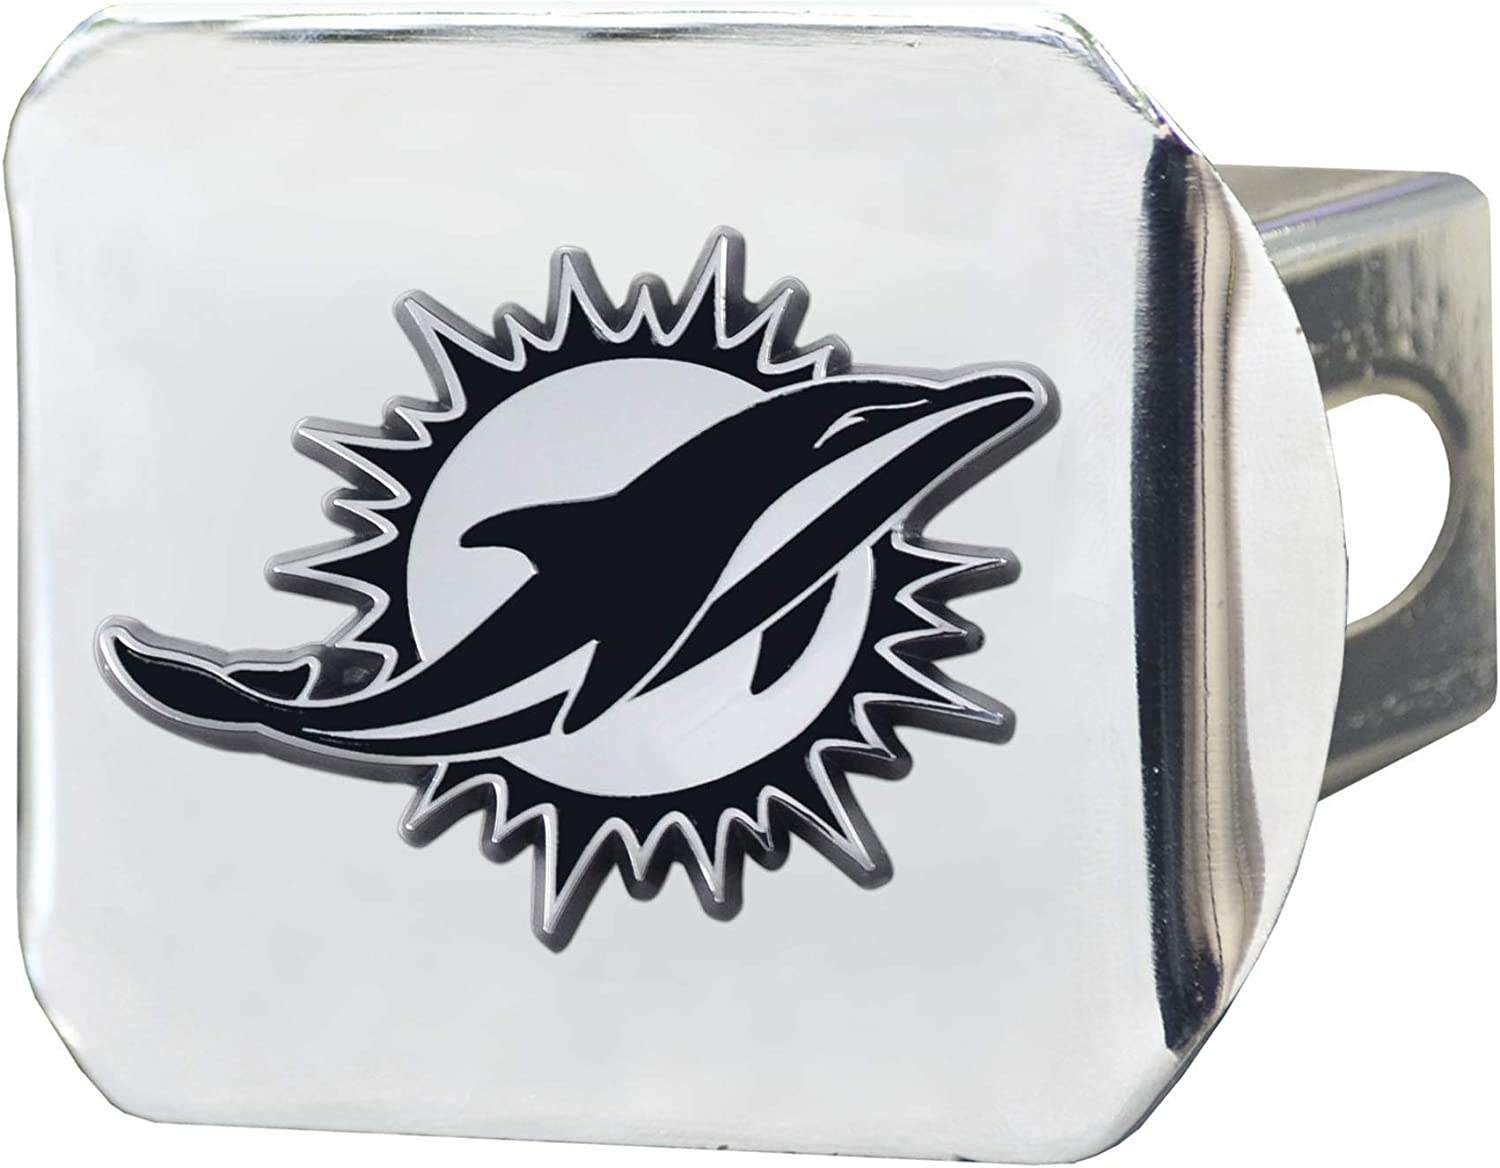 2 Square Type III Hitch Cover FANMATS 15602 NFL Miami Dolphins Metal Hitch Cover Chrome